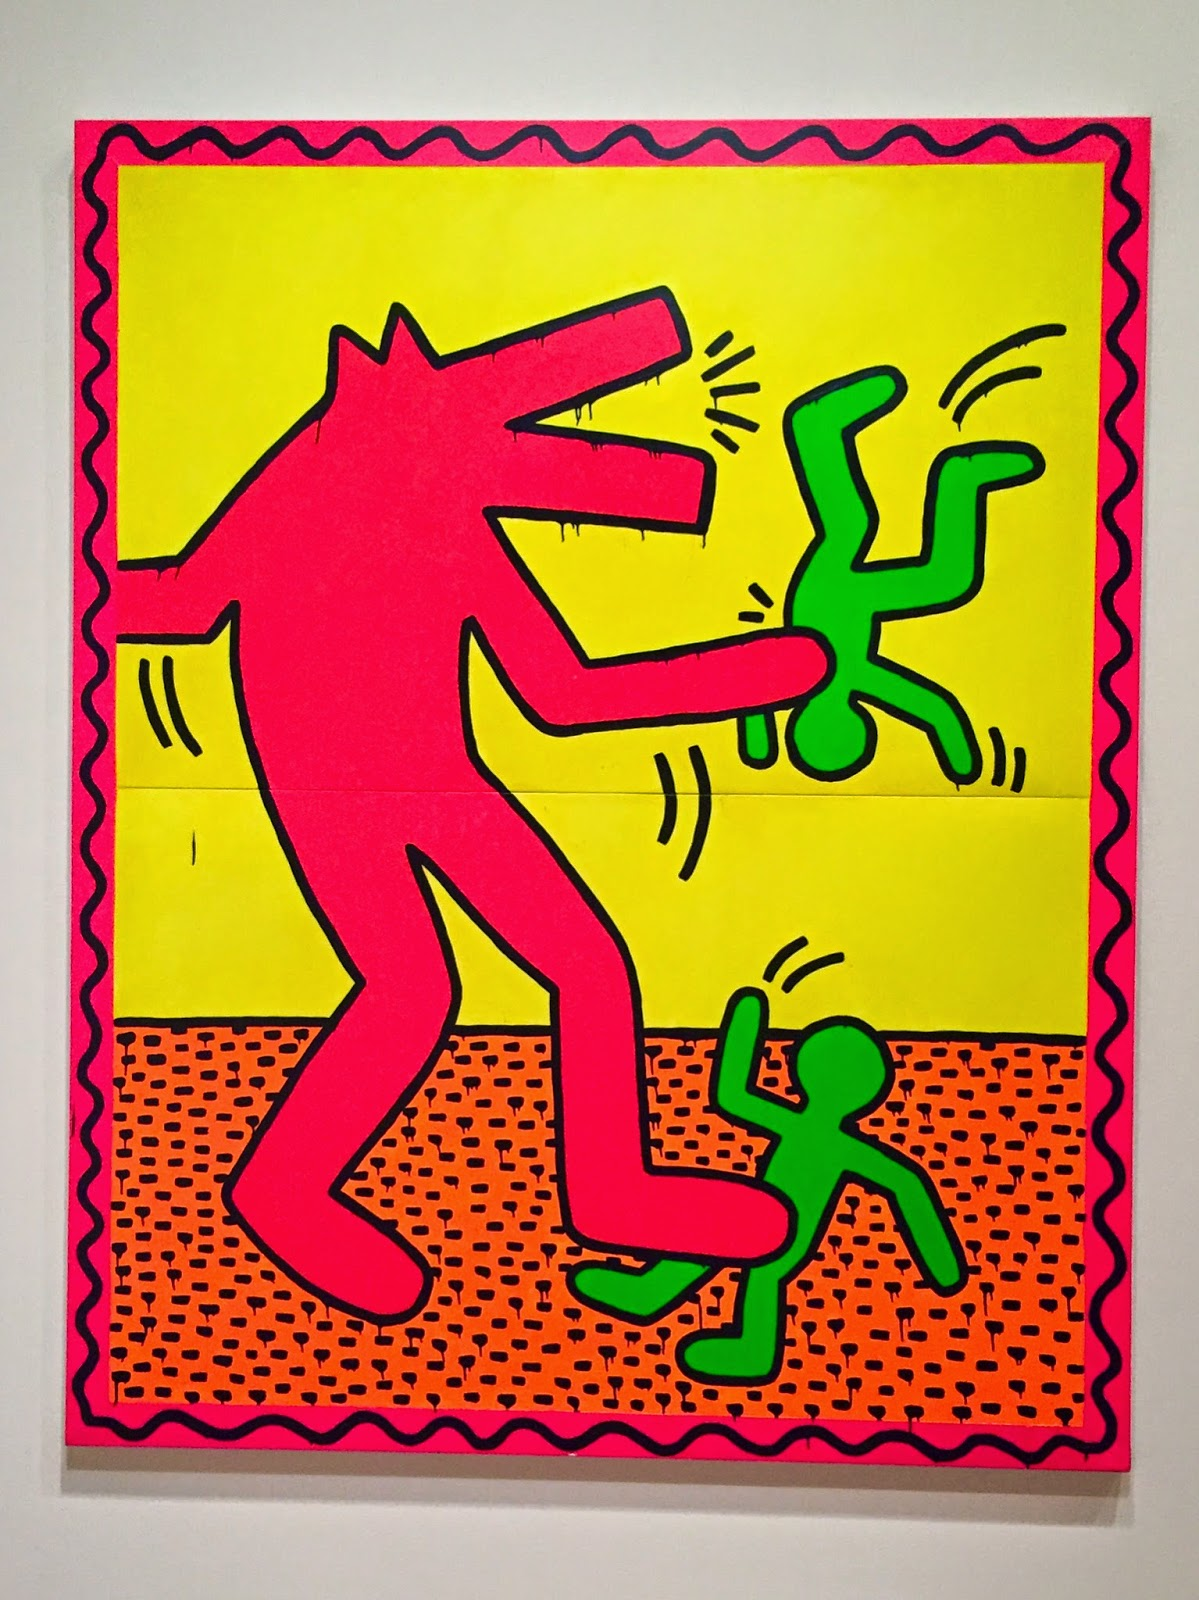 keith haring communicating through cartoons Om nom stories | baby om nom loves ice cream | funny cartoons live hooplakidz tv - funny cartoons for children 409 watching live now keith haring - the boy who just kept drawing 4-3-17 - duration.